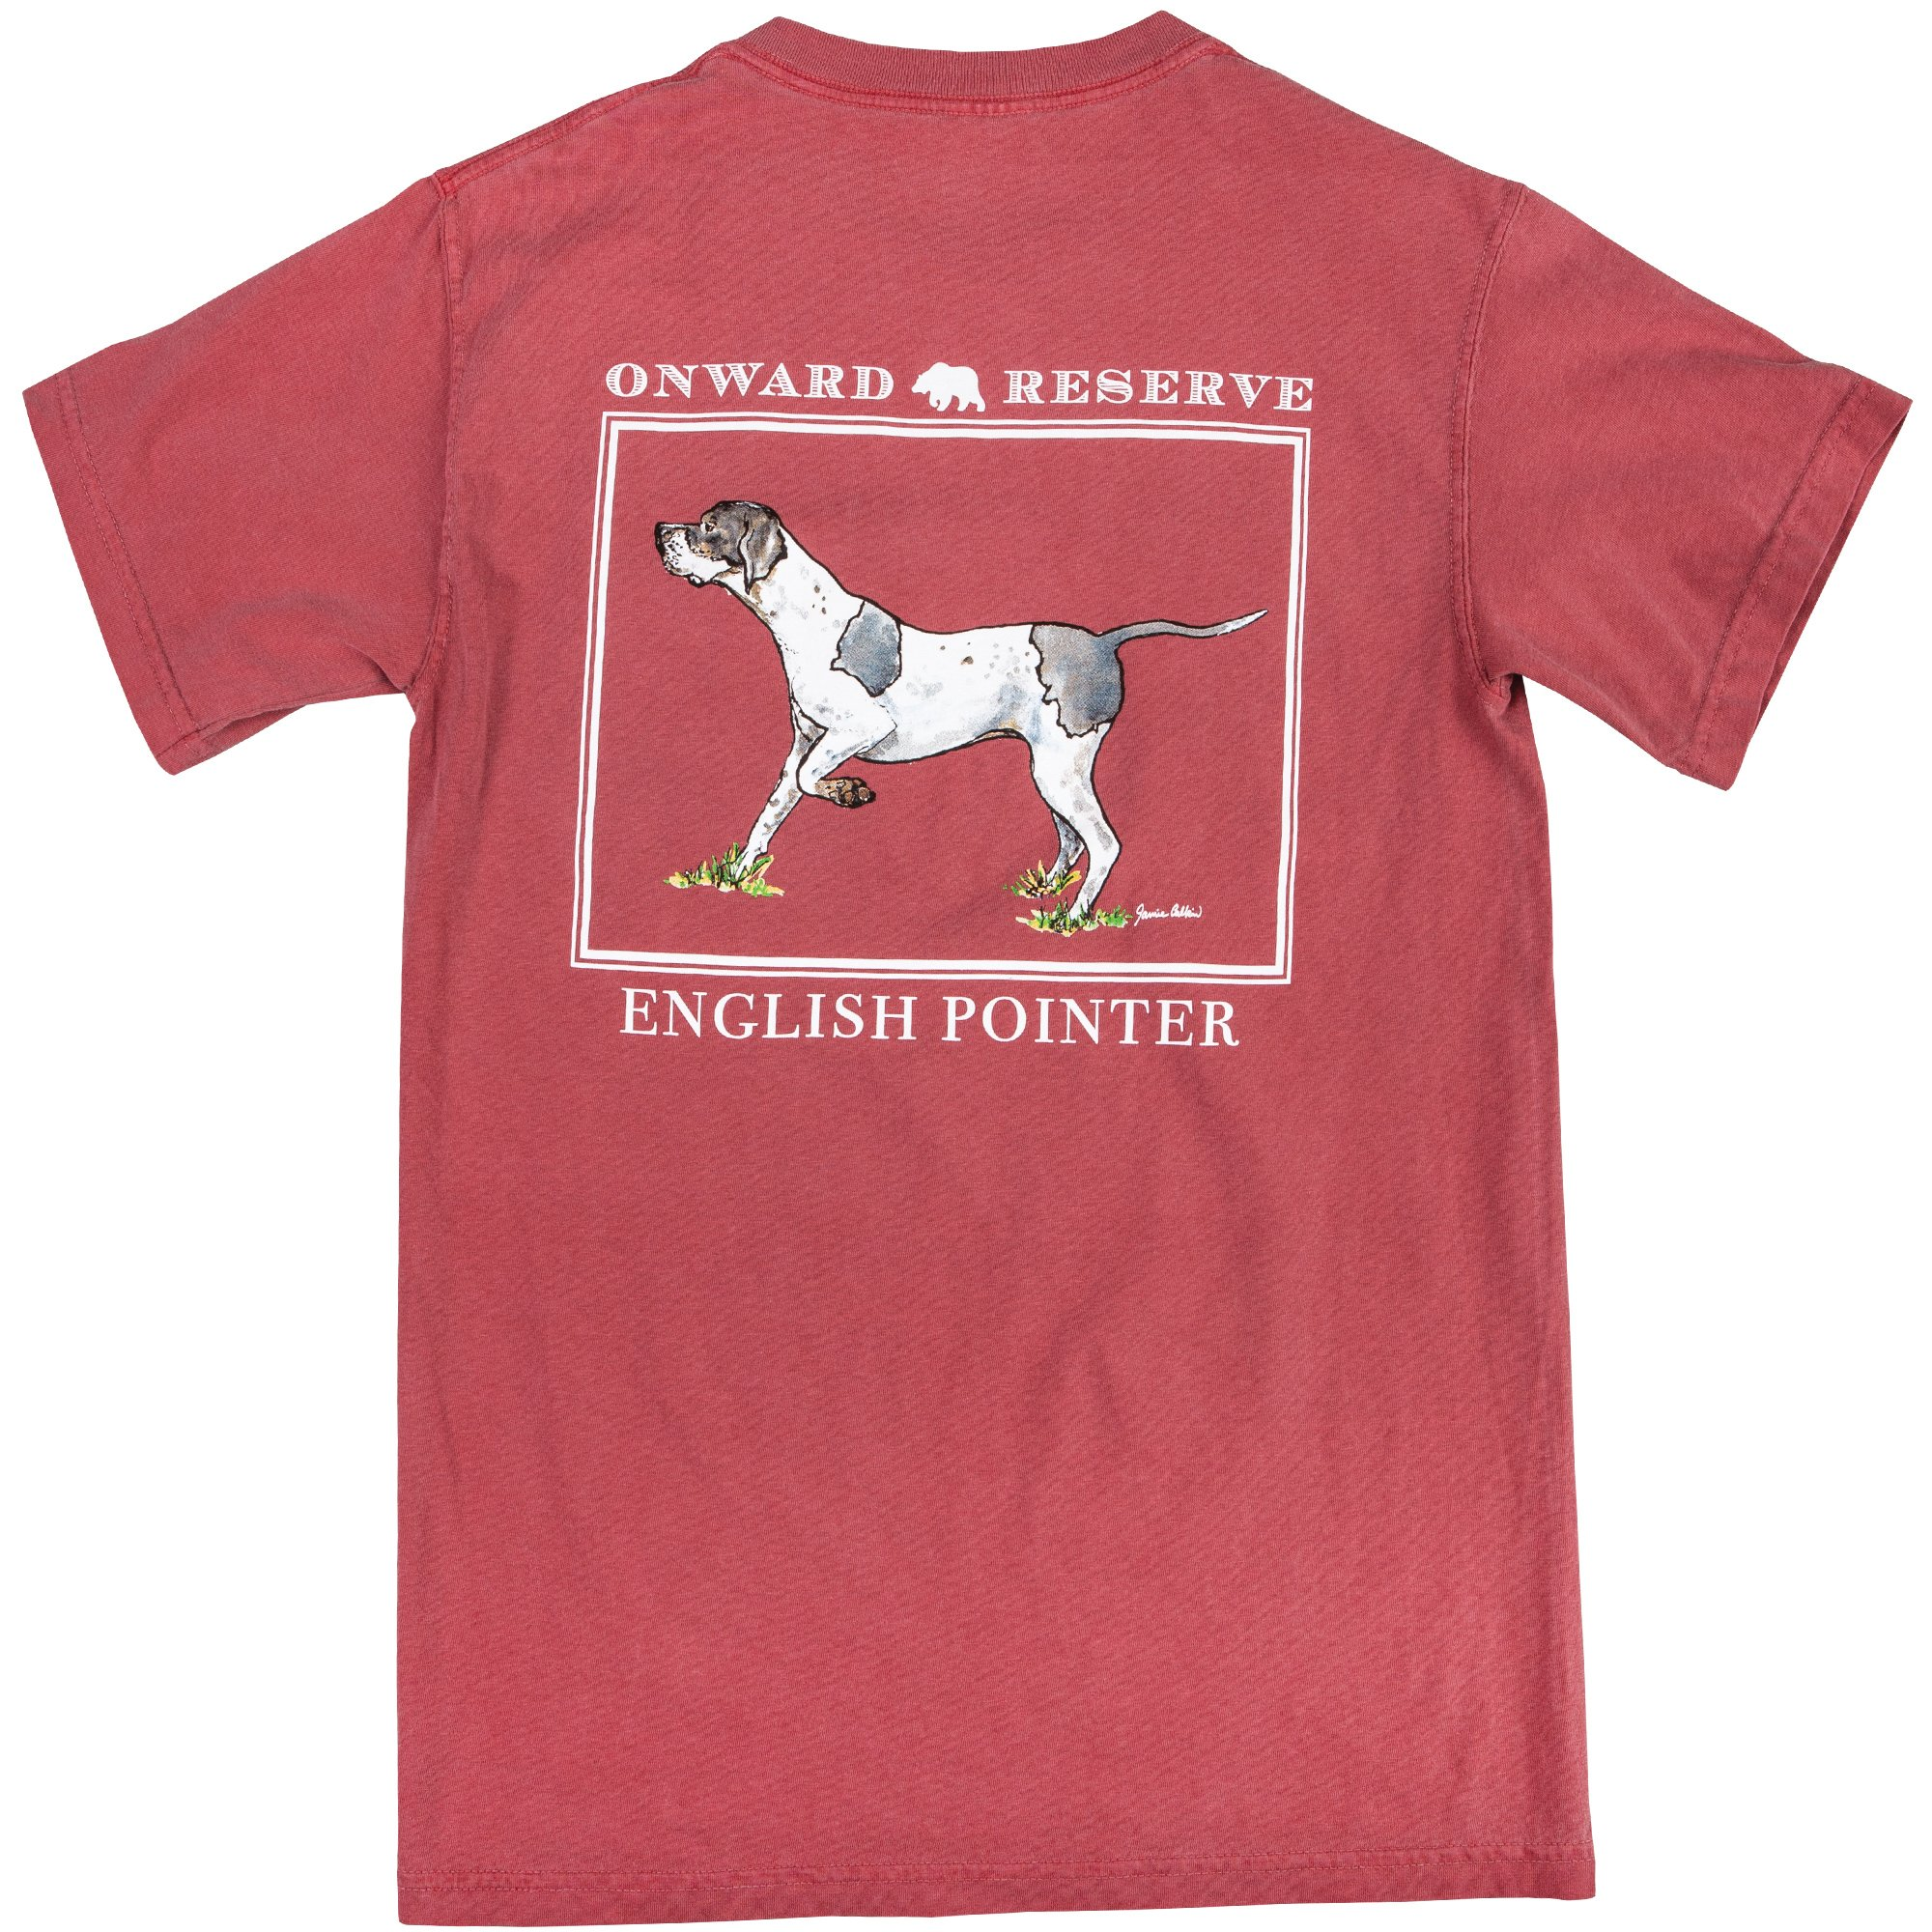 OR-Jamie-Tee-SS-English-Pointer-Rust-Back.jpg